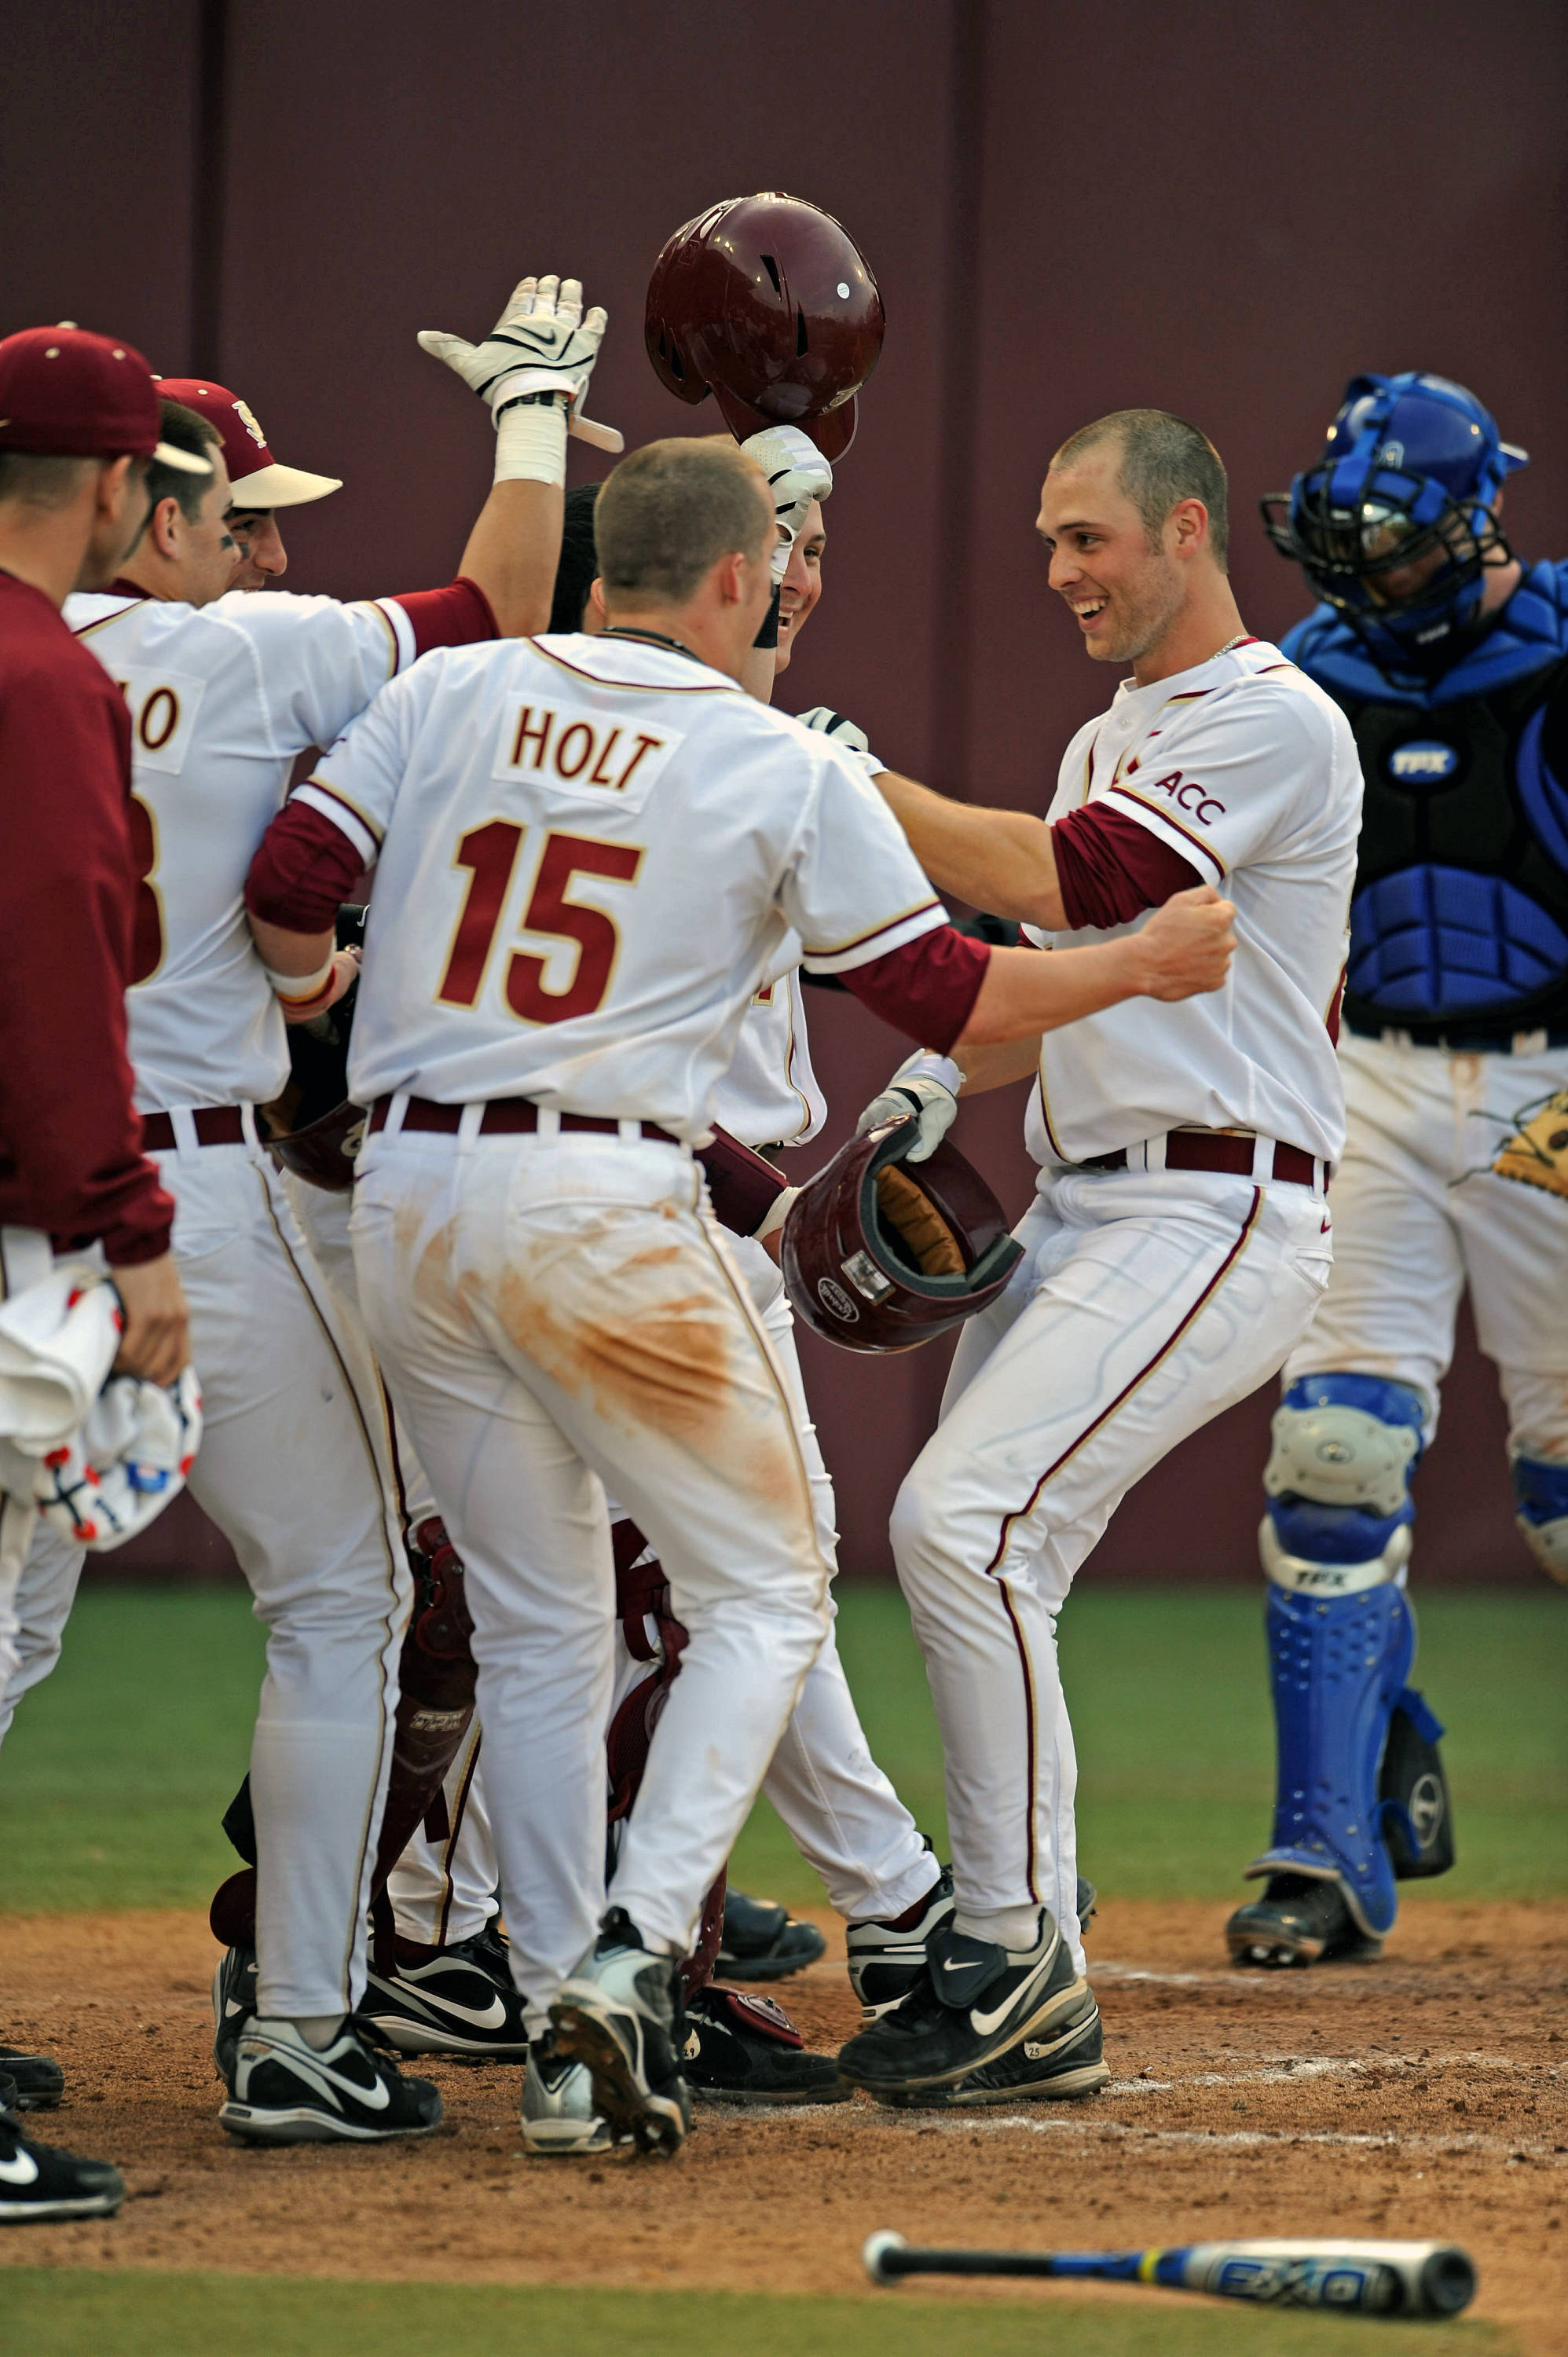 Mike McGee celebrates with teammates after going yard for the first Seminole home run of the season.